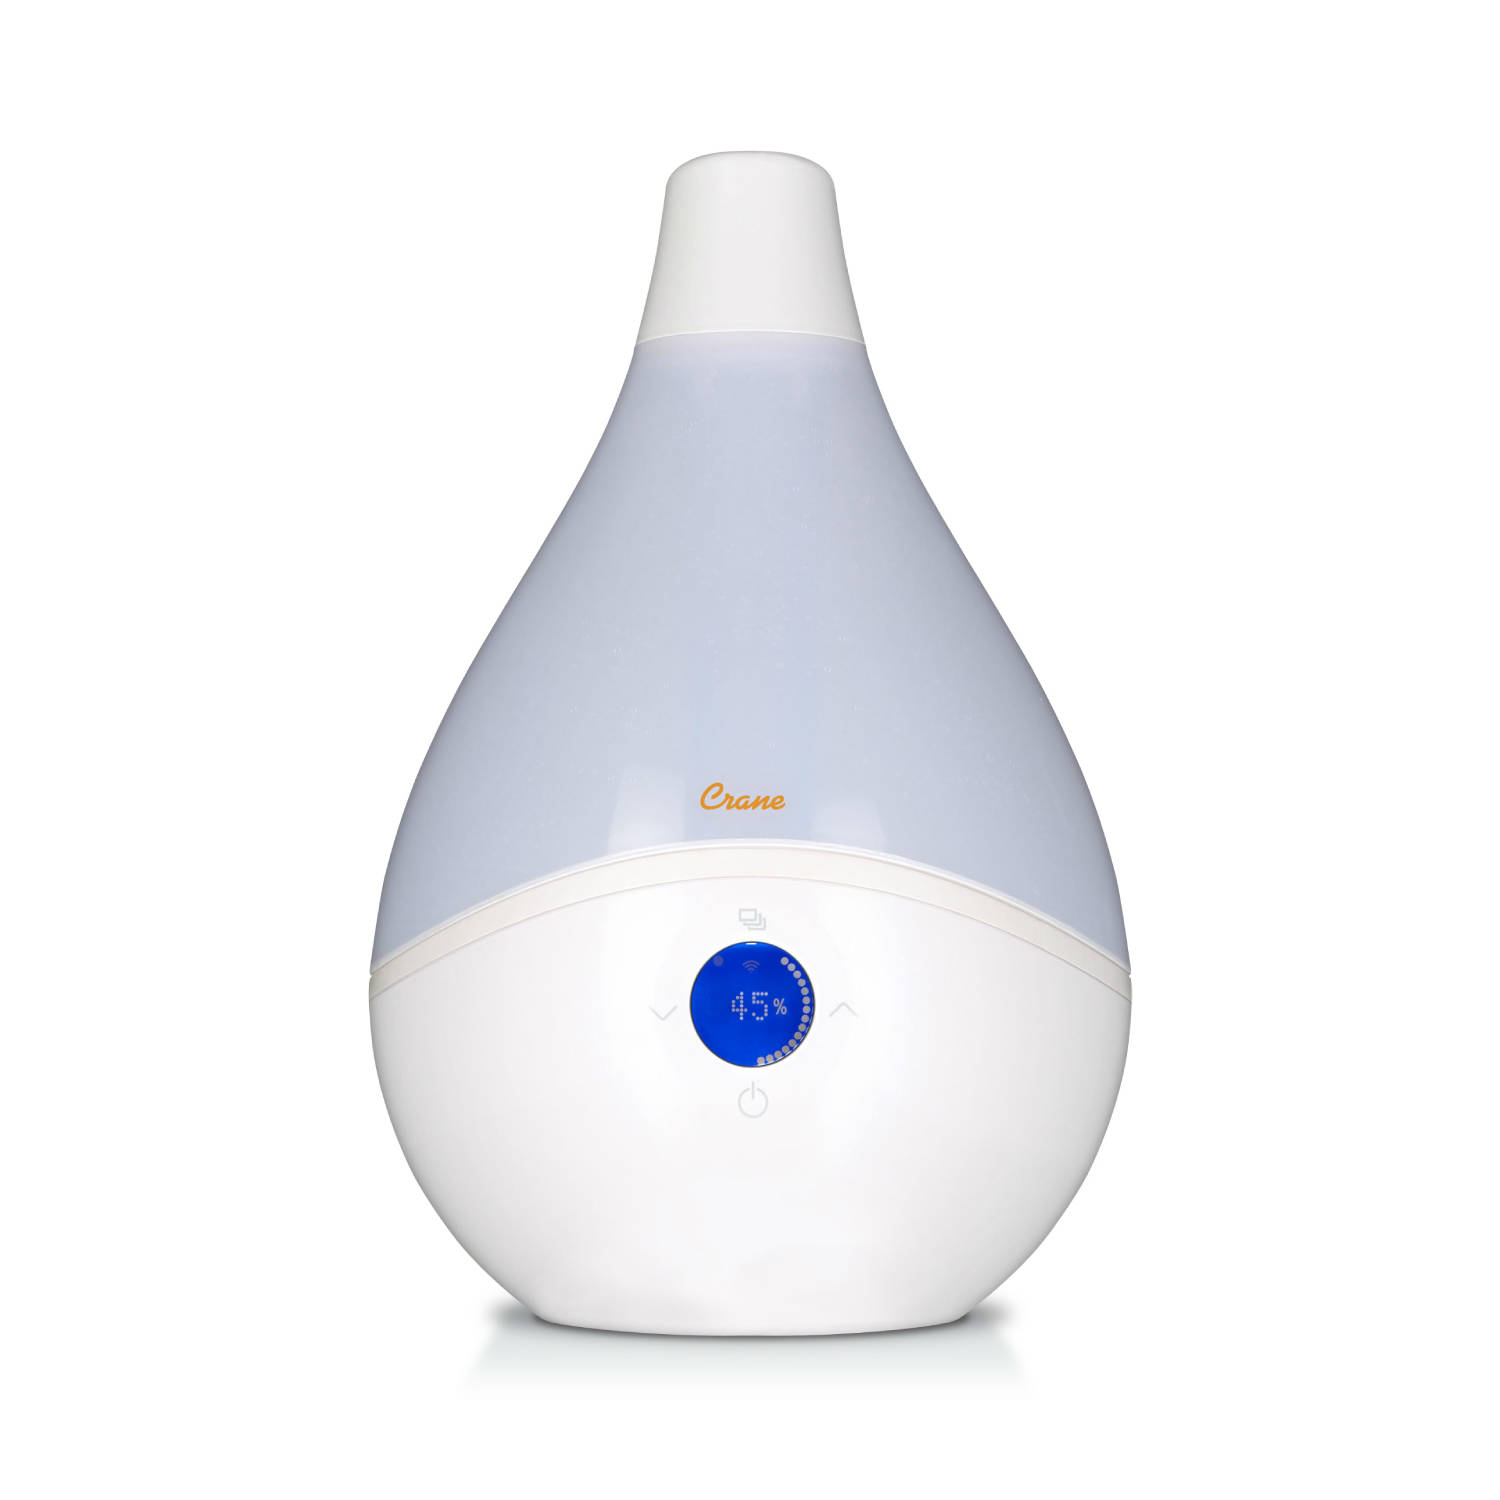 Crane EE 5302 1/2 Gallon Cool Mist Drop Humidifier Walmart.com #0536C6